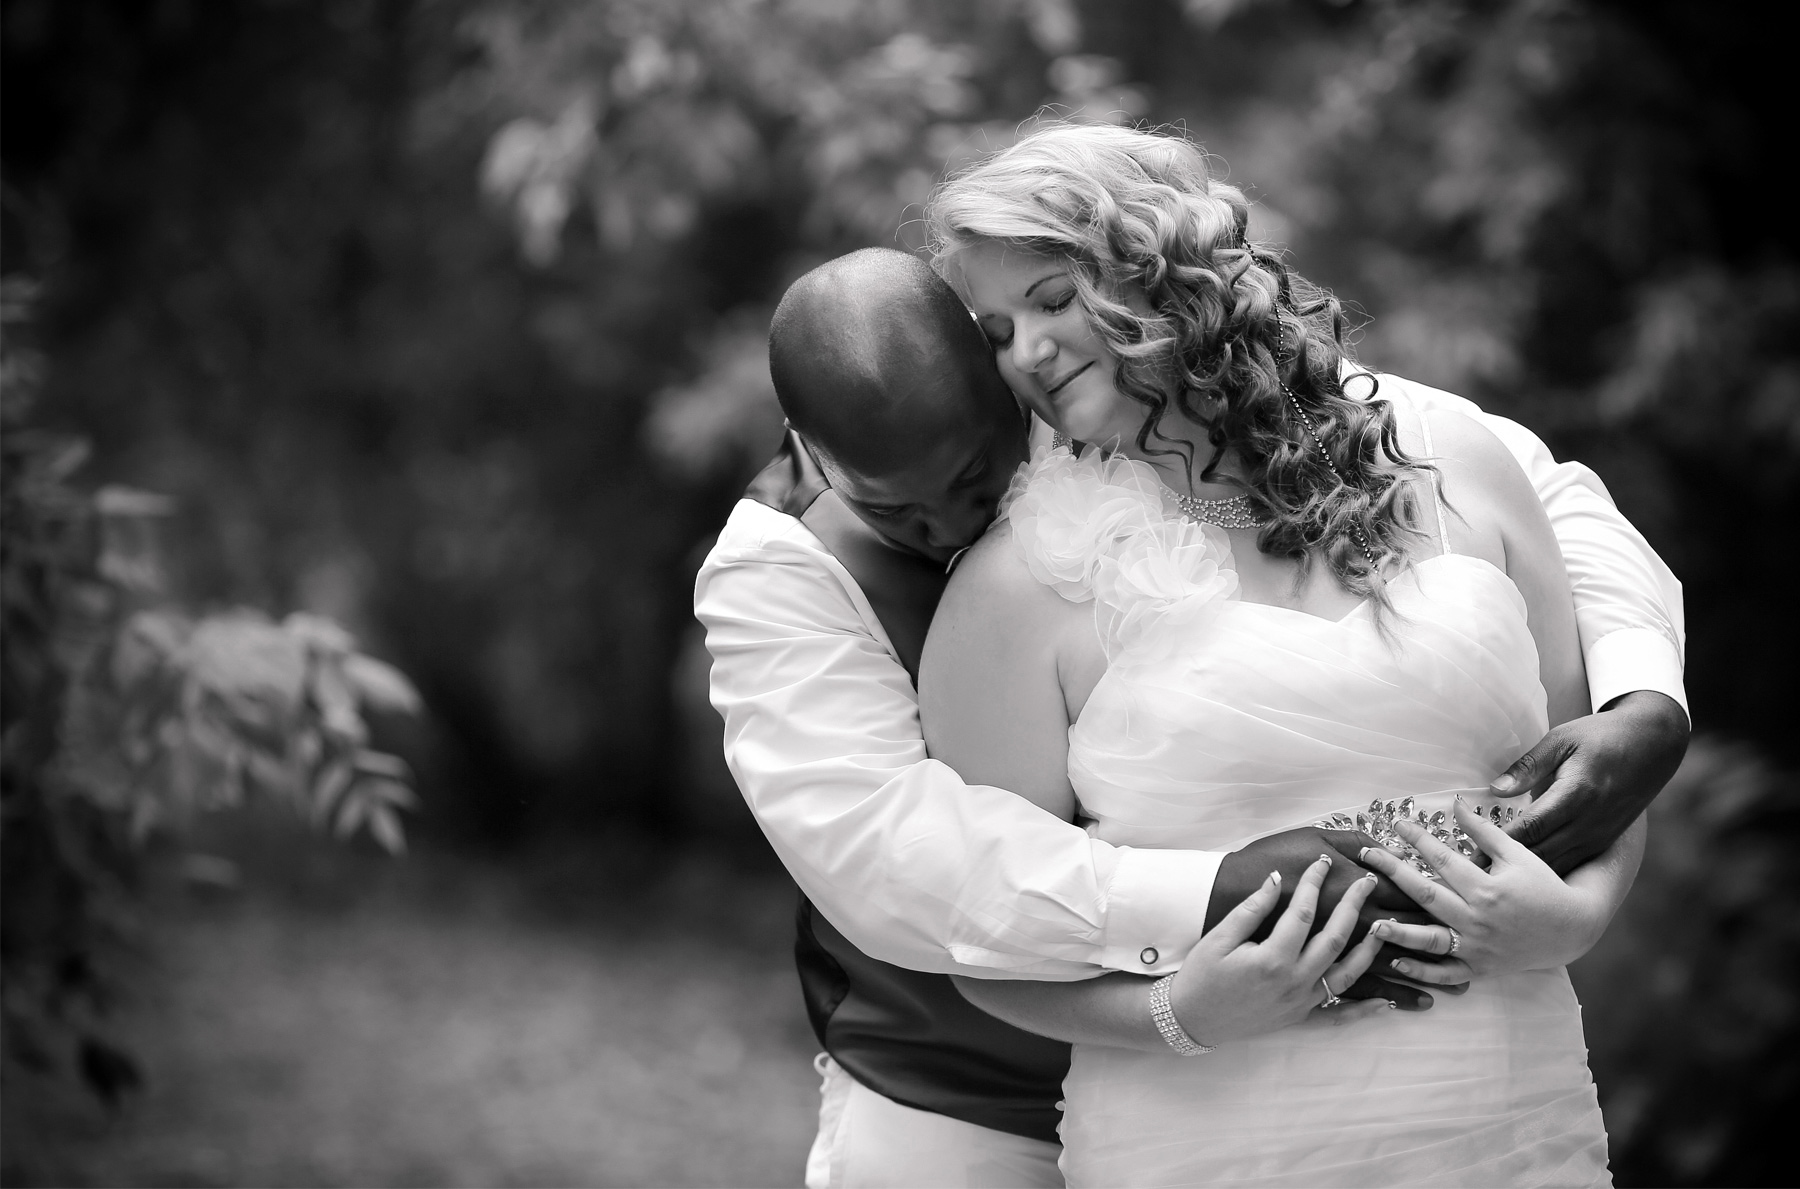 05-Minneapolis-Minnesota-Wedding-Photography-by-Vick-Photography-at-Plymouth-Creek-Center-First-Look-Emily-&-Lonnie.jpg